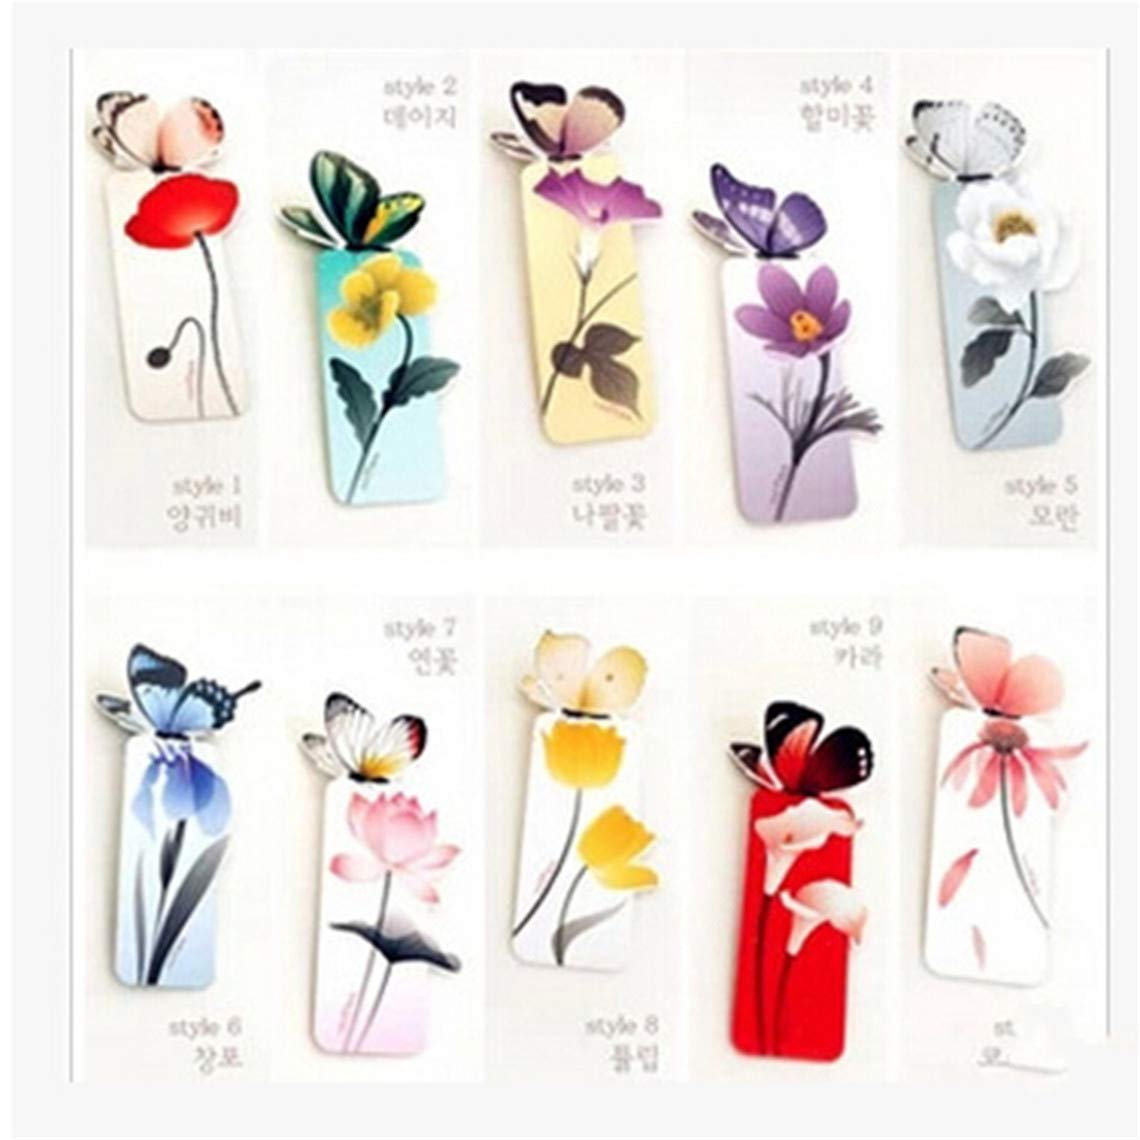 Rurah 5Pcs Cartoon Book Marks Lovely Colored Butterfly Mini 3D Bookmarks Paper Clip Stationery Reading Accessories Office School Supply DIY Creative Gift